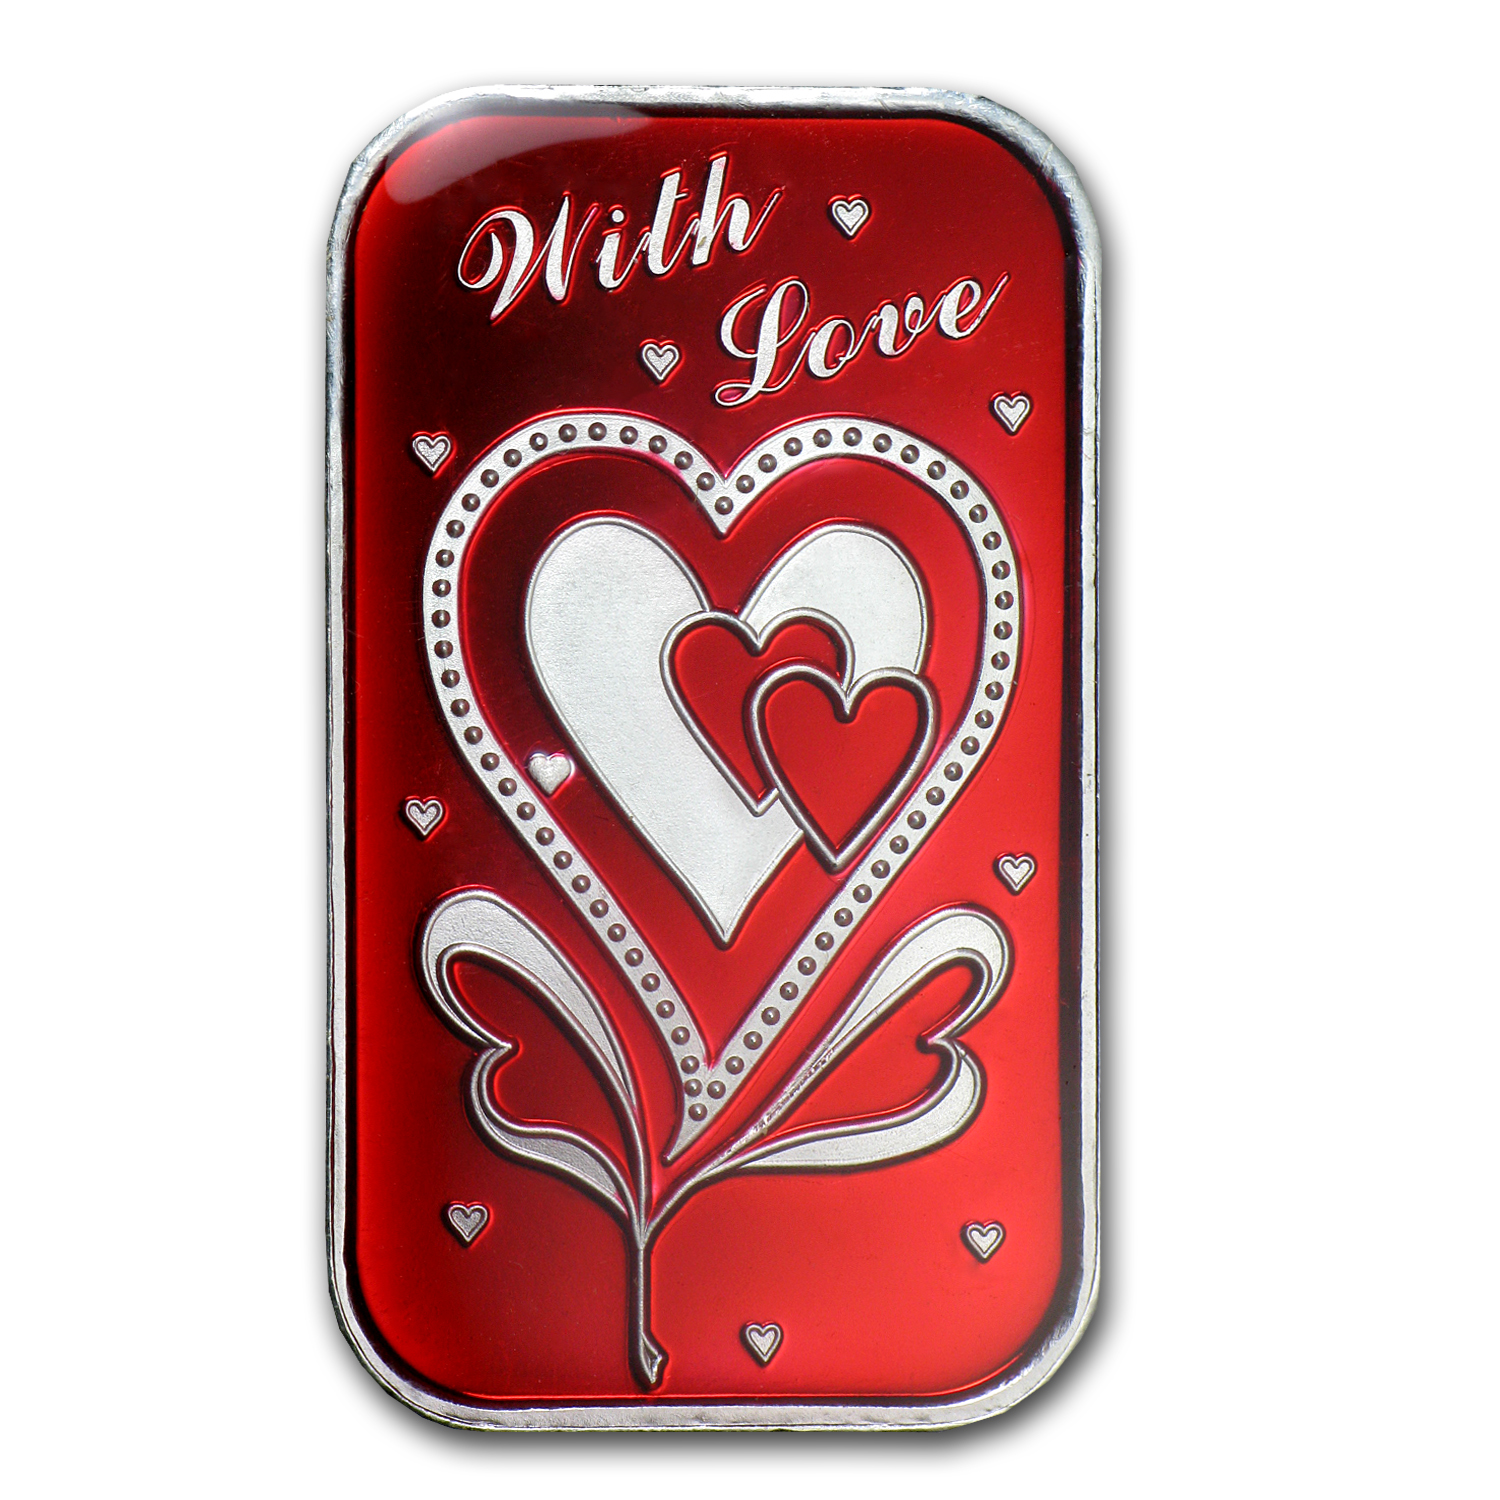 1 oz Silver Bars - With Love Enameled (w/Box & Capsule)